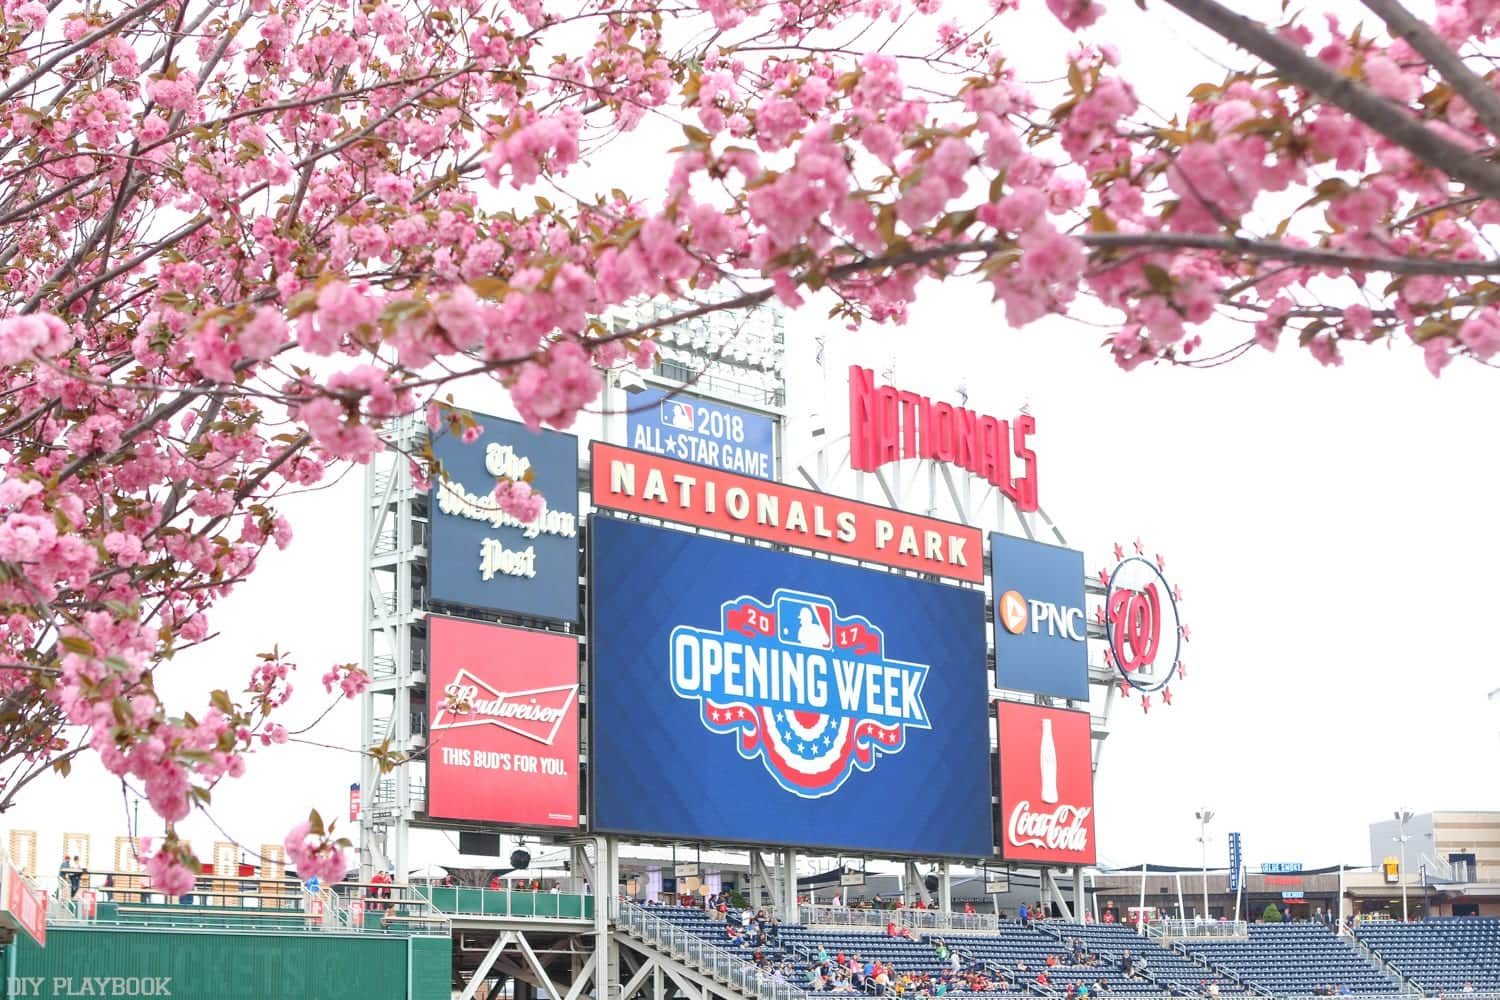 Cherry blossoms at a Nationals baseball game in Washington, DC.